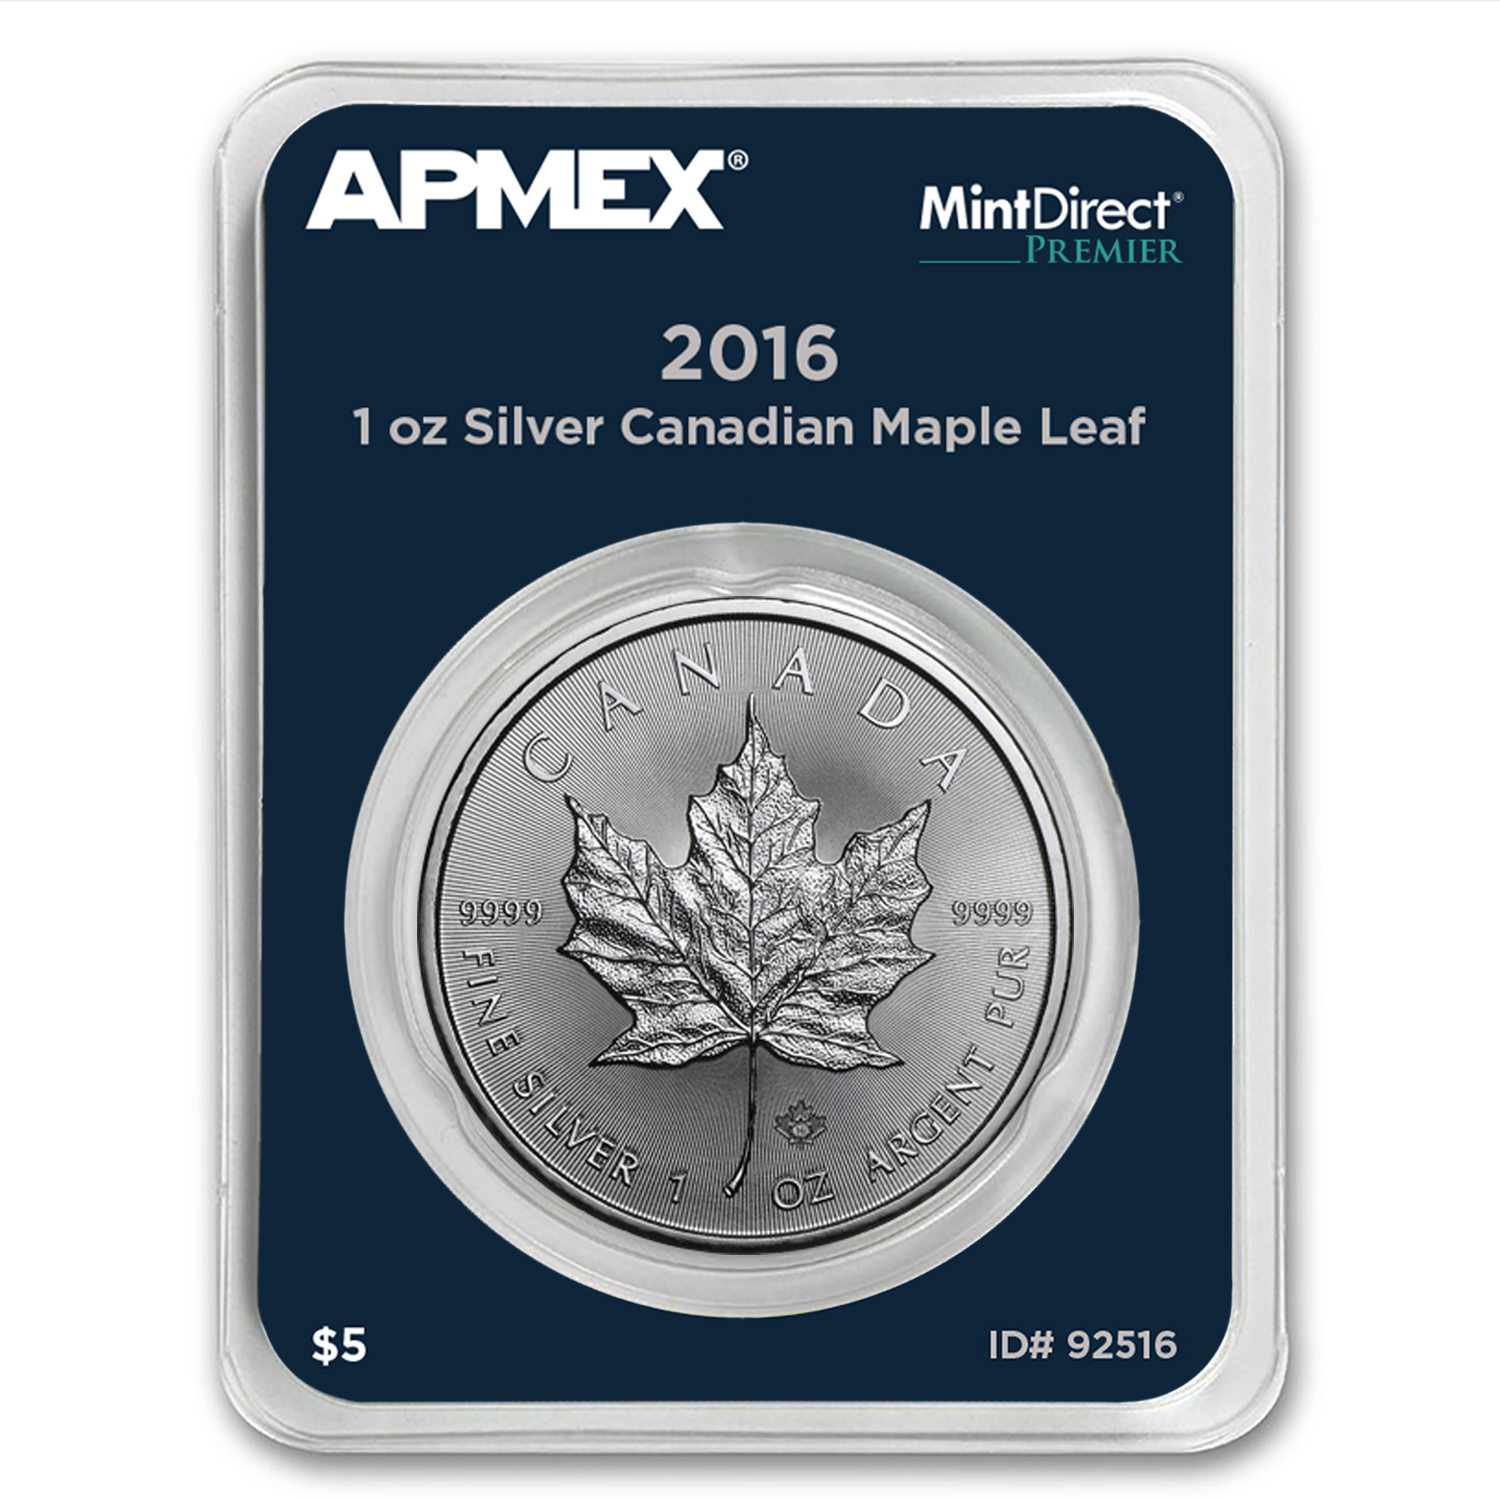 2016 1 oz Silver Maple Leaf (MintDirect® Premier Single)